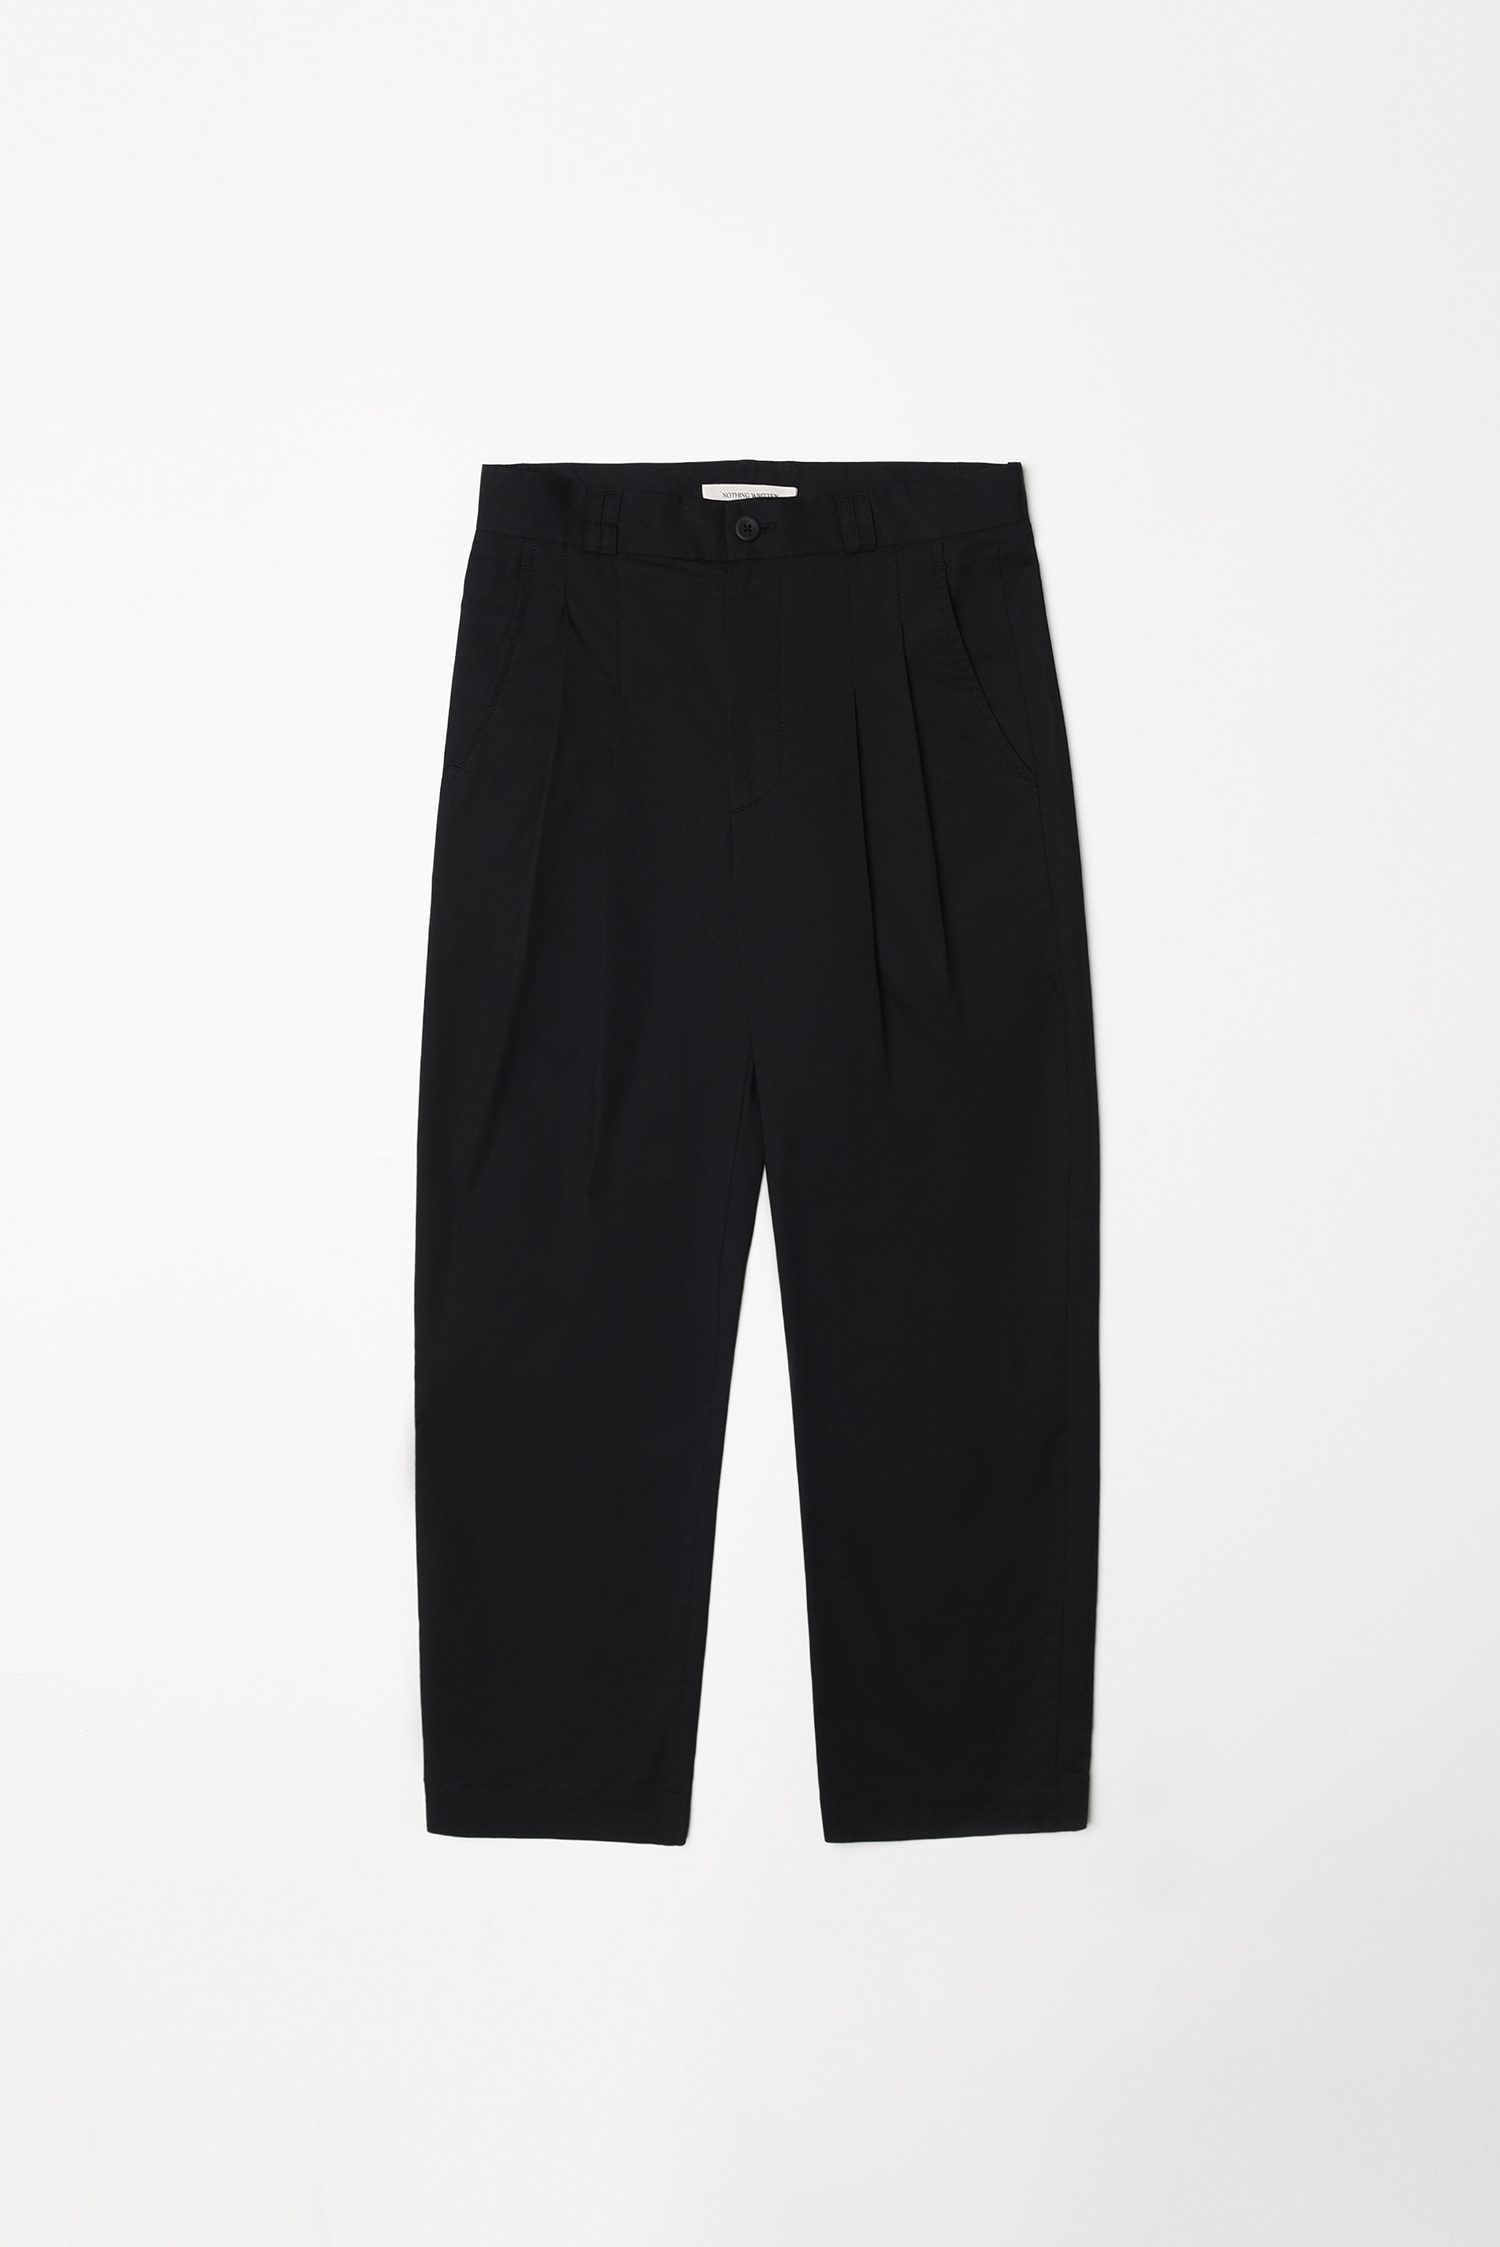 Cotton tuck pants (black)